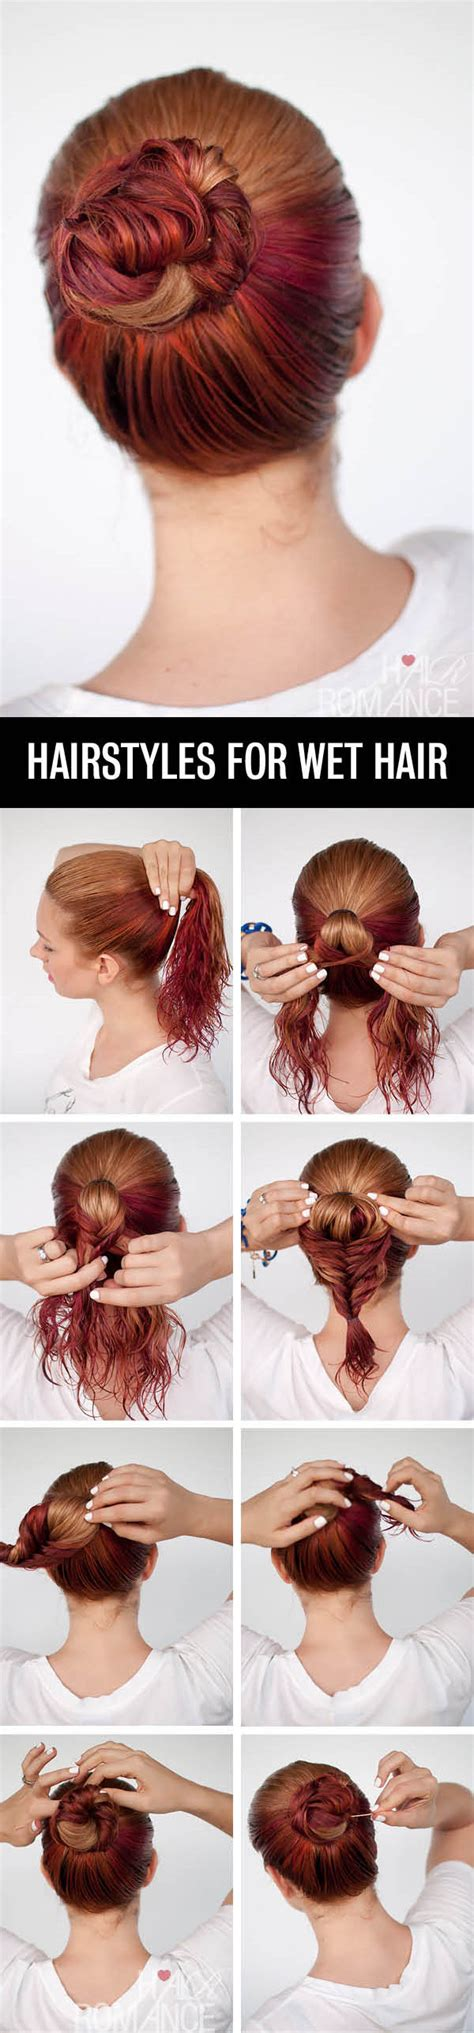 easy hairstyles for medium wet hair get ready fast with 7 easy hairstyle tutorials for wet